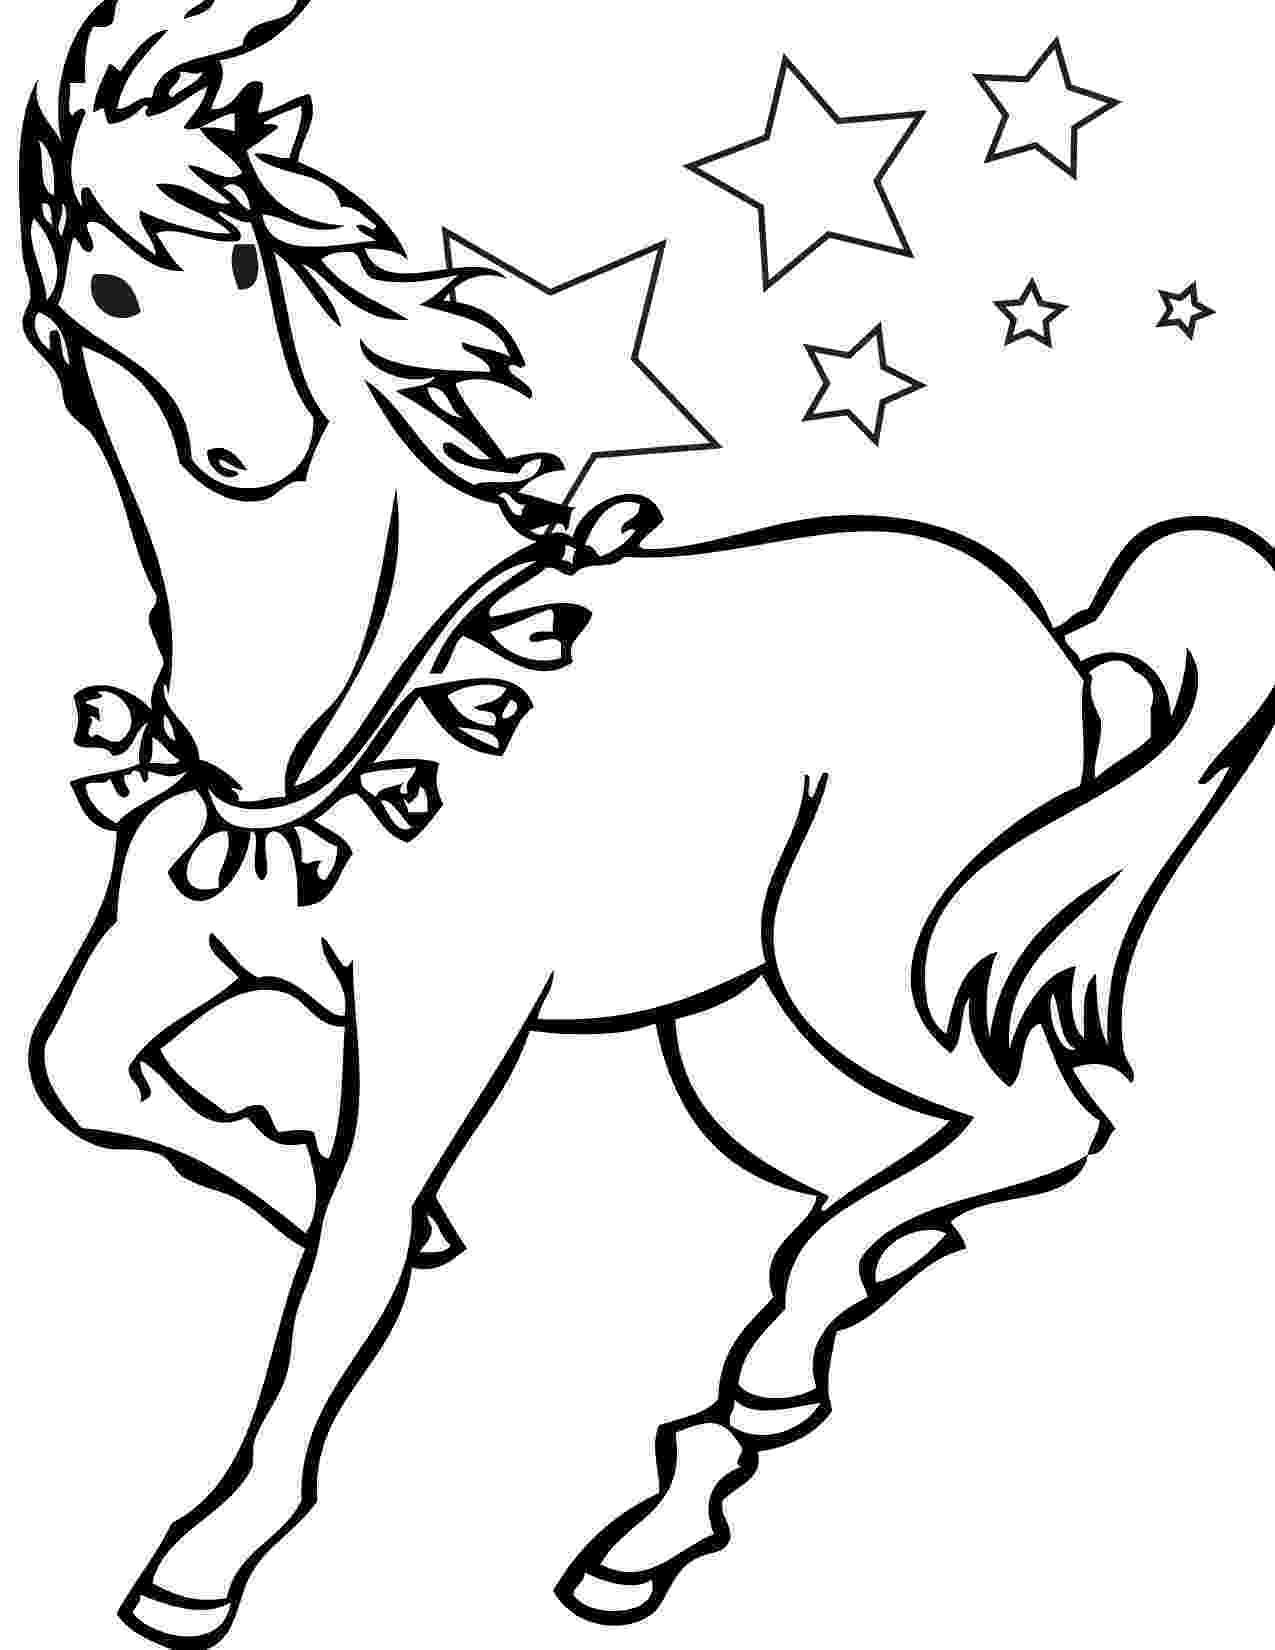 coloring pages of horse horse coloring pages 360coloringpages horse coloring pages of